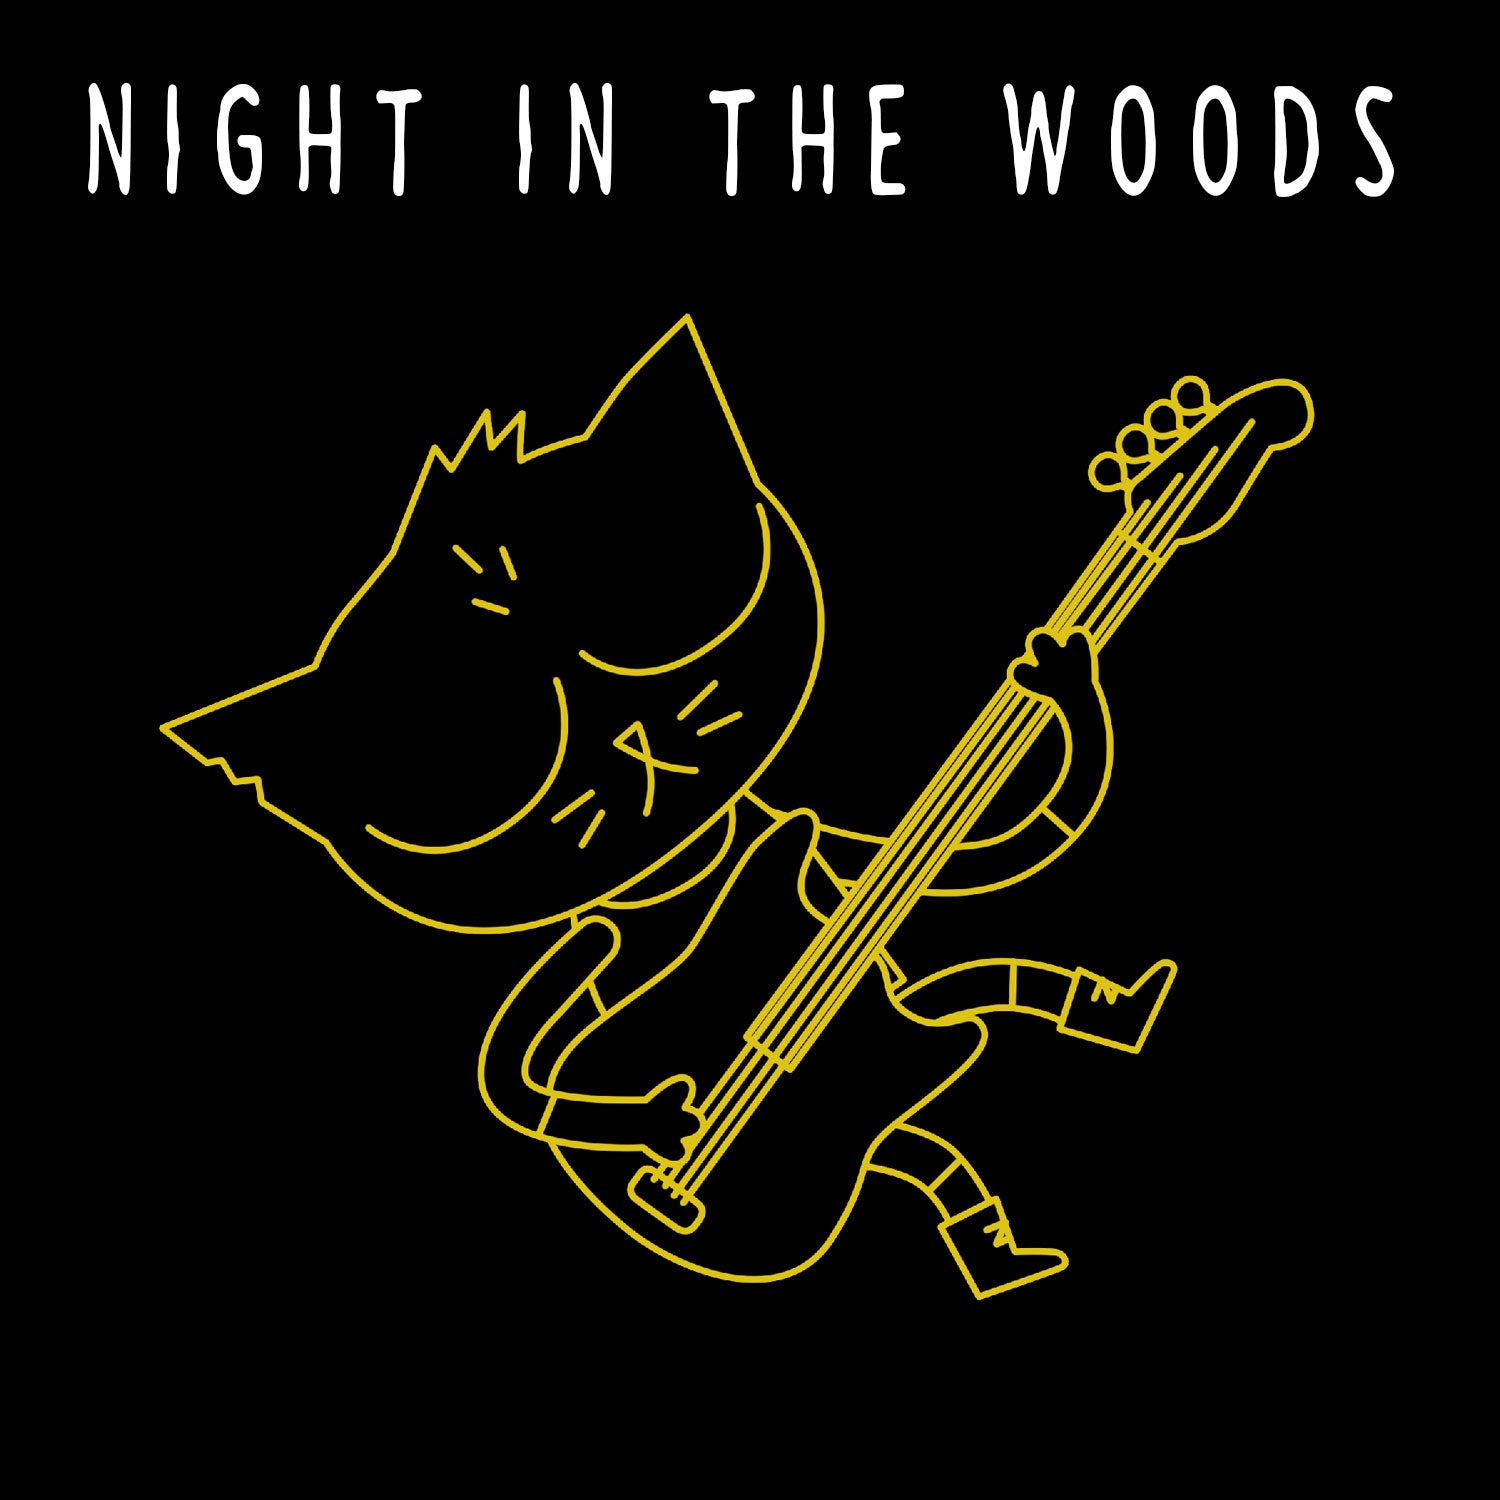 NIGHT IN THE WOODS ENAMEL PIN